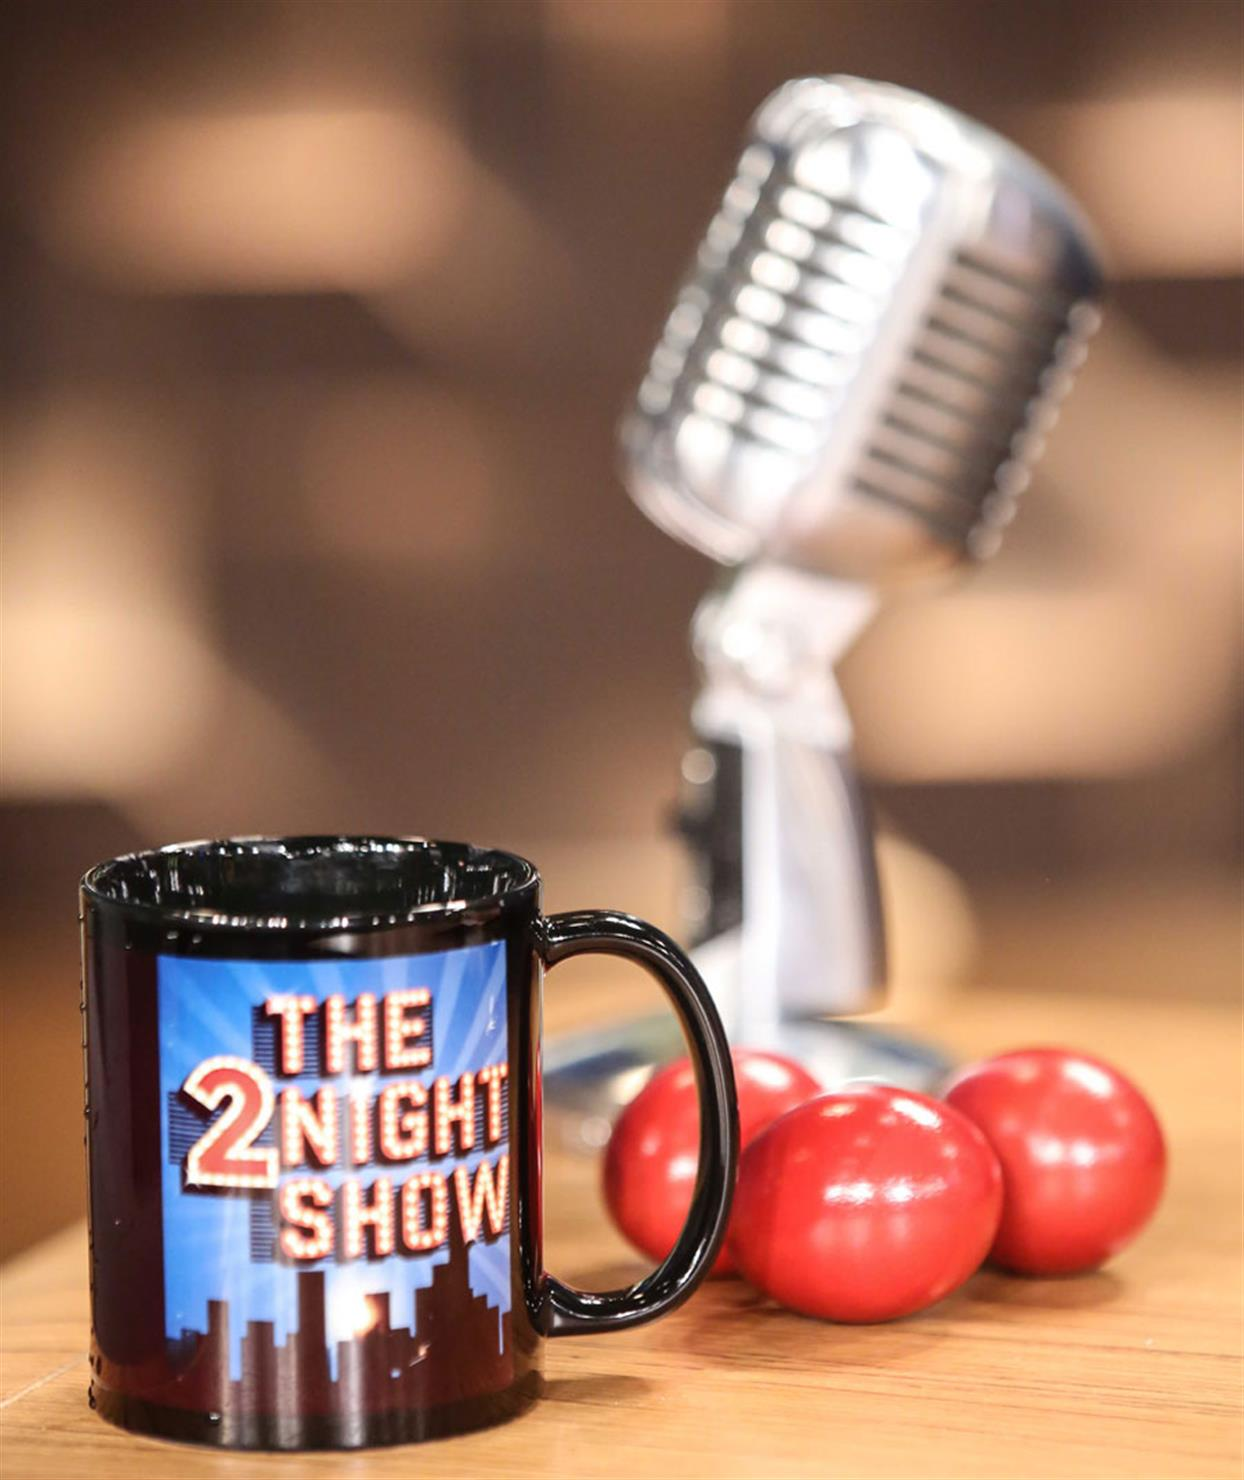 THE 2NIGHT SHOW - 1/5